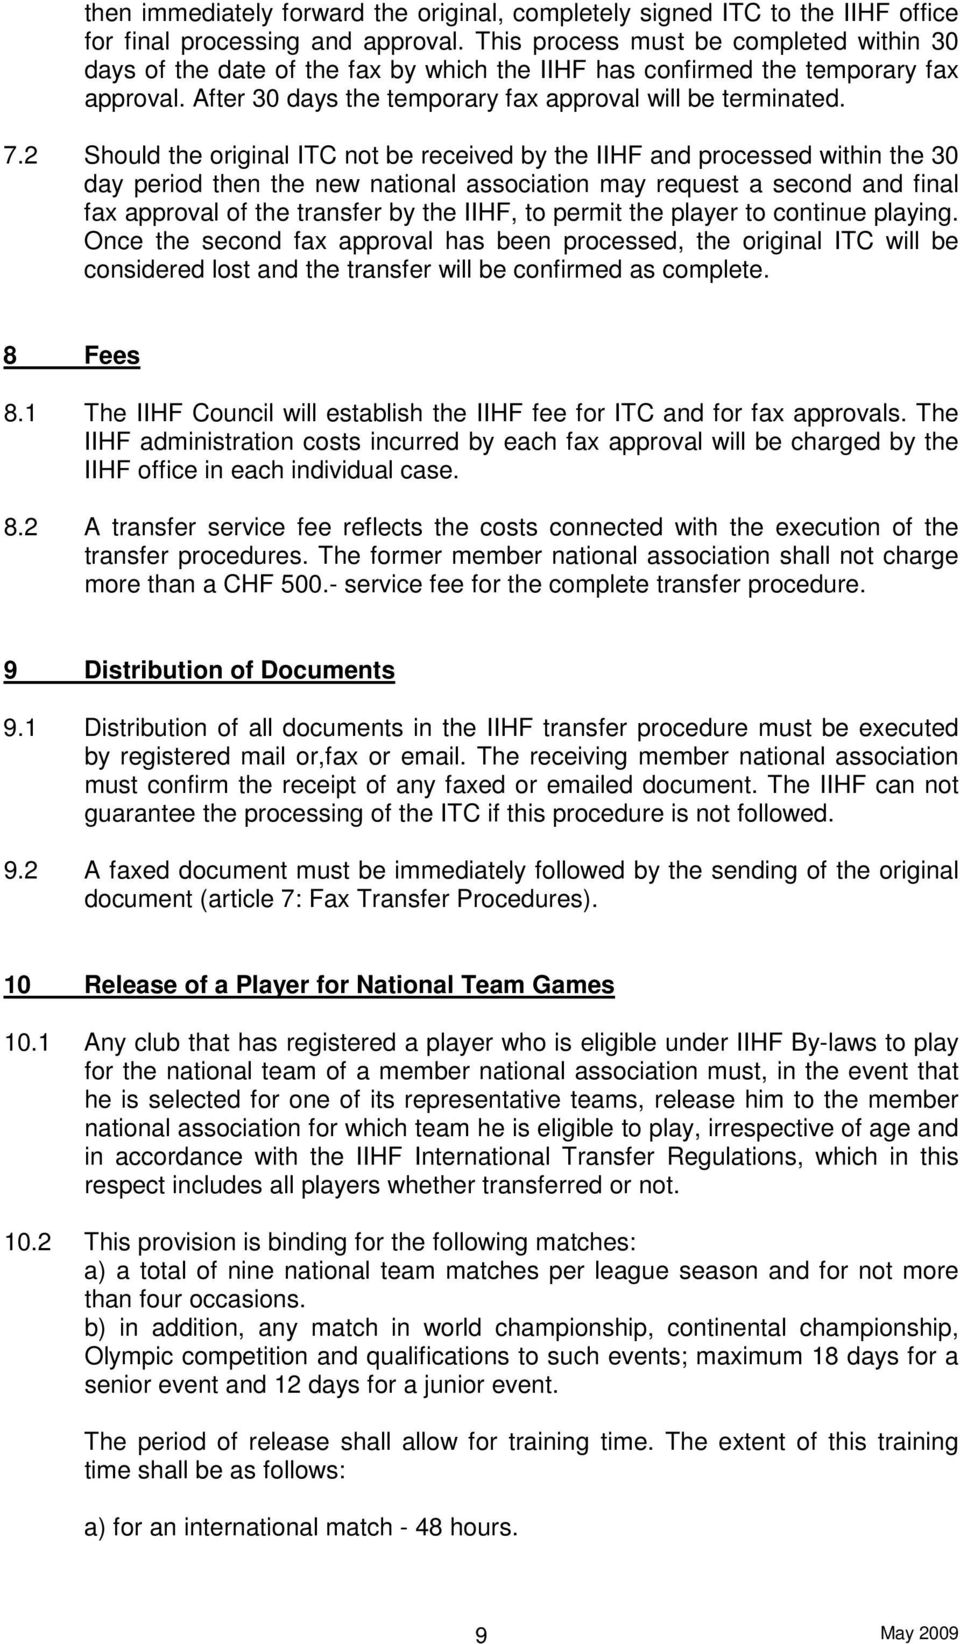 2 Should the original ITC not be received by the IIHF and processed within the 30 day period then the new national association may request a second and final fax approval of the transfer by the IIHF,